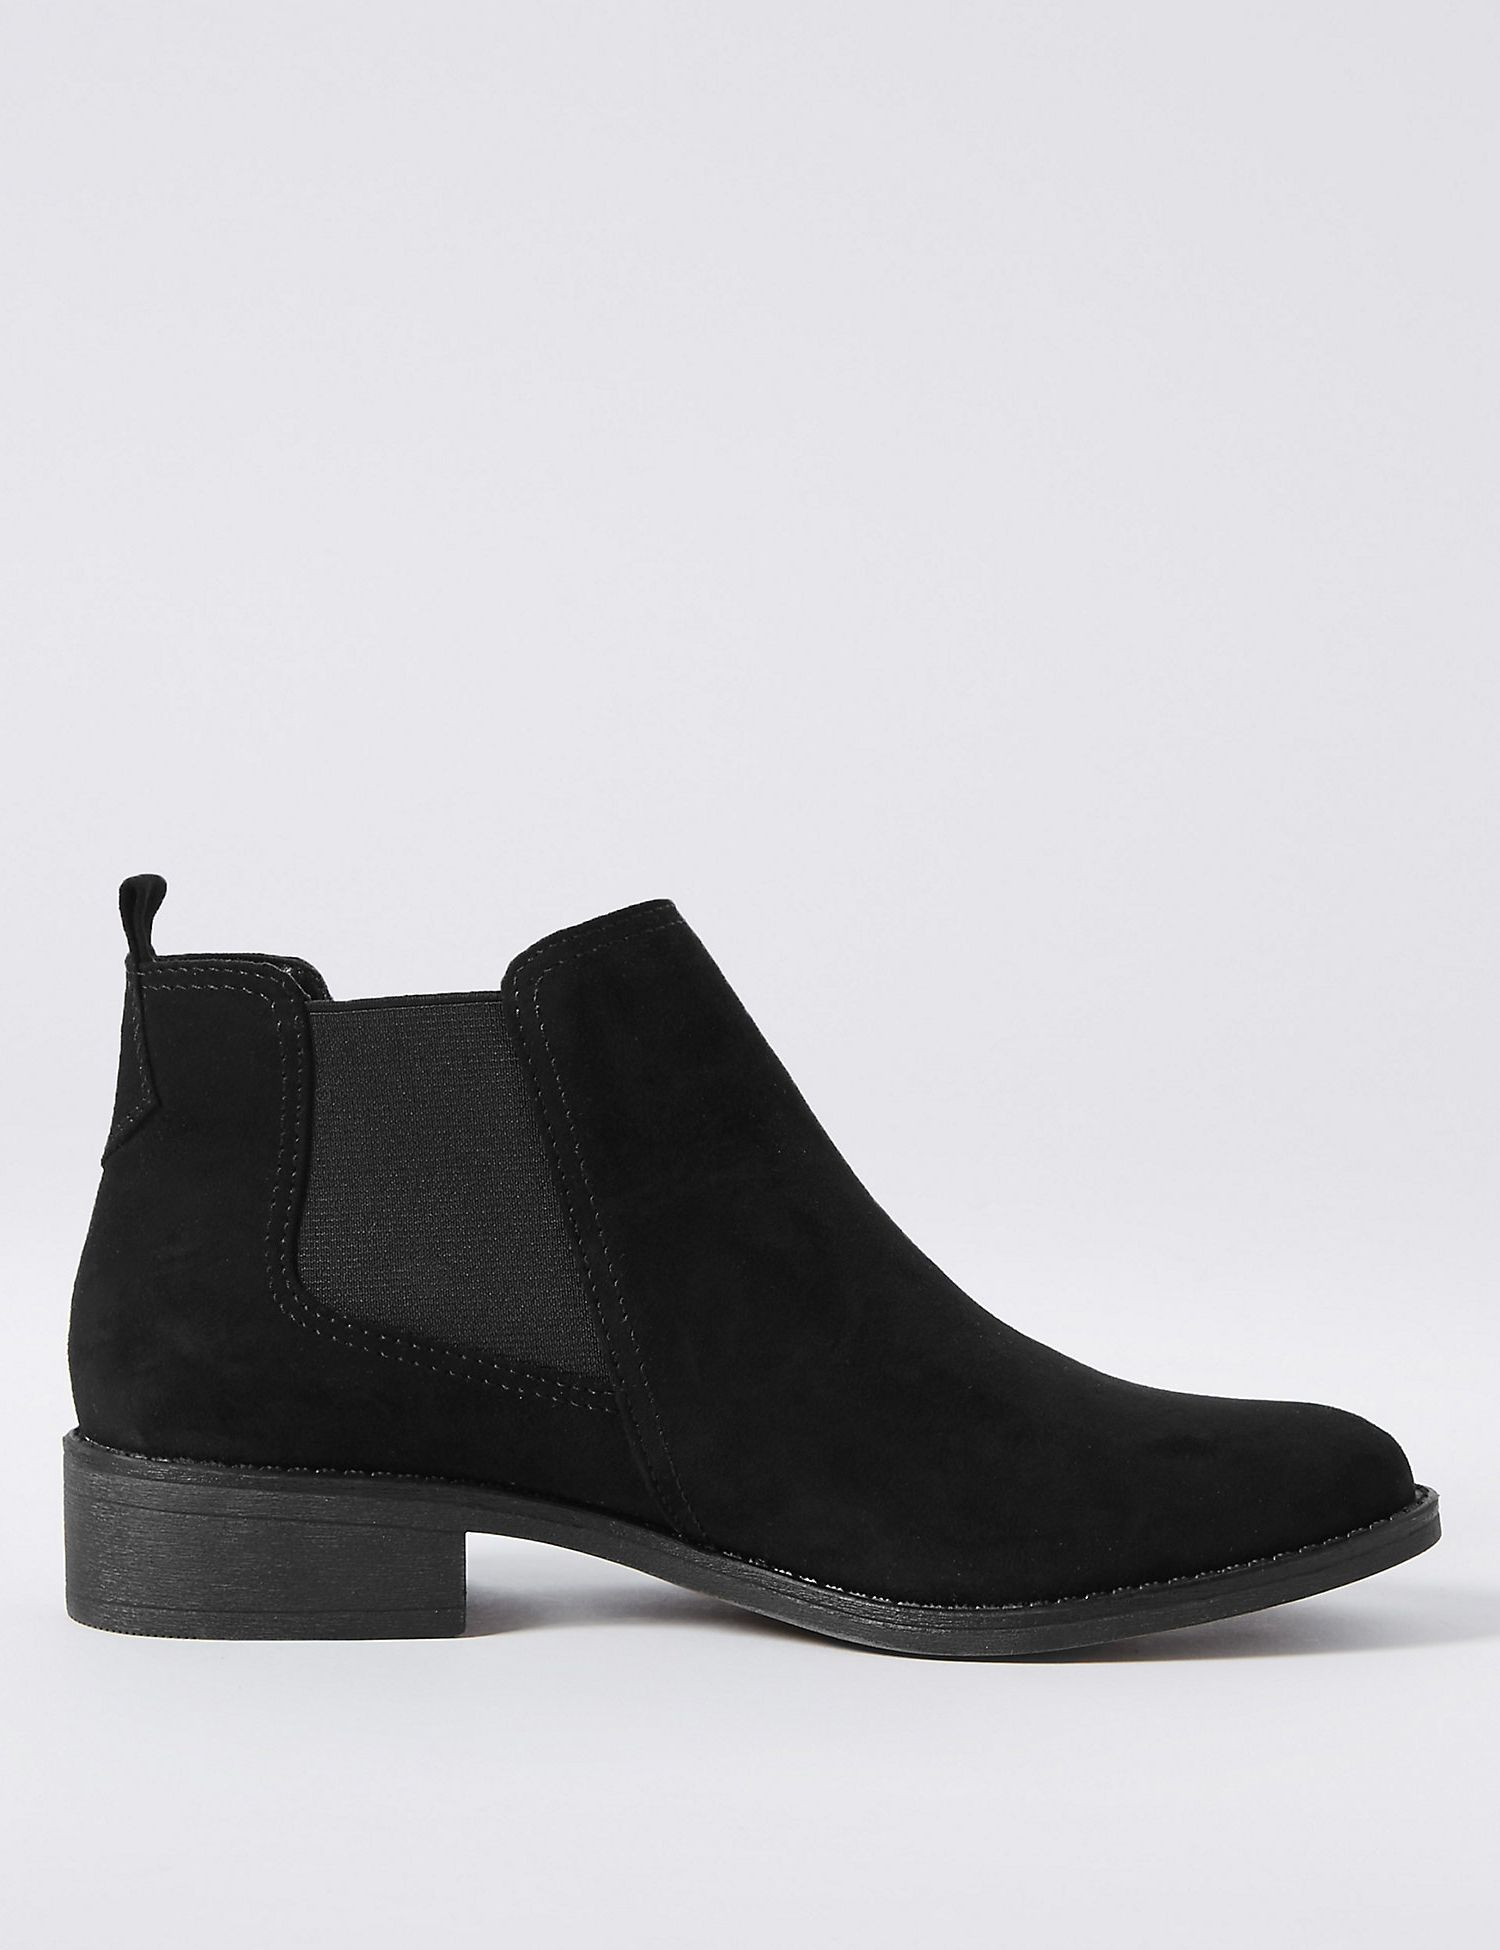 Black ankle boots - 25 best ankle boots